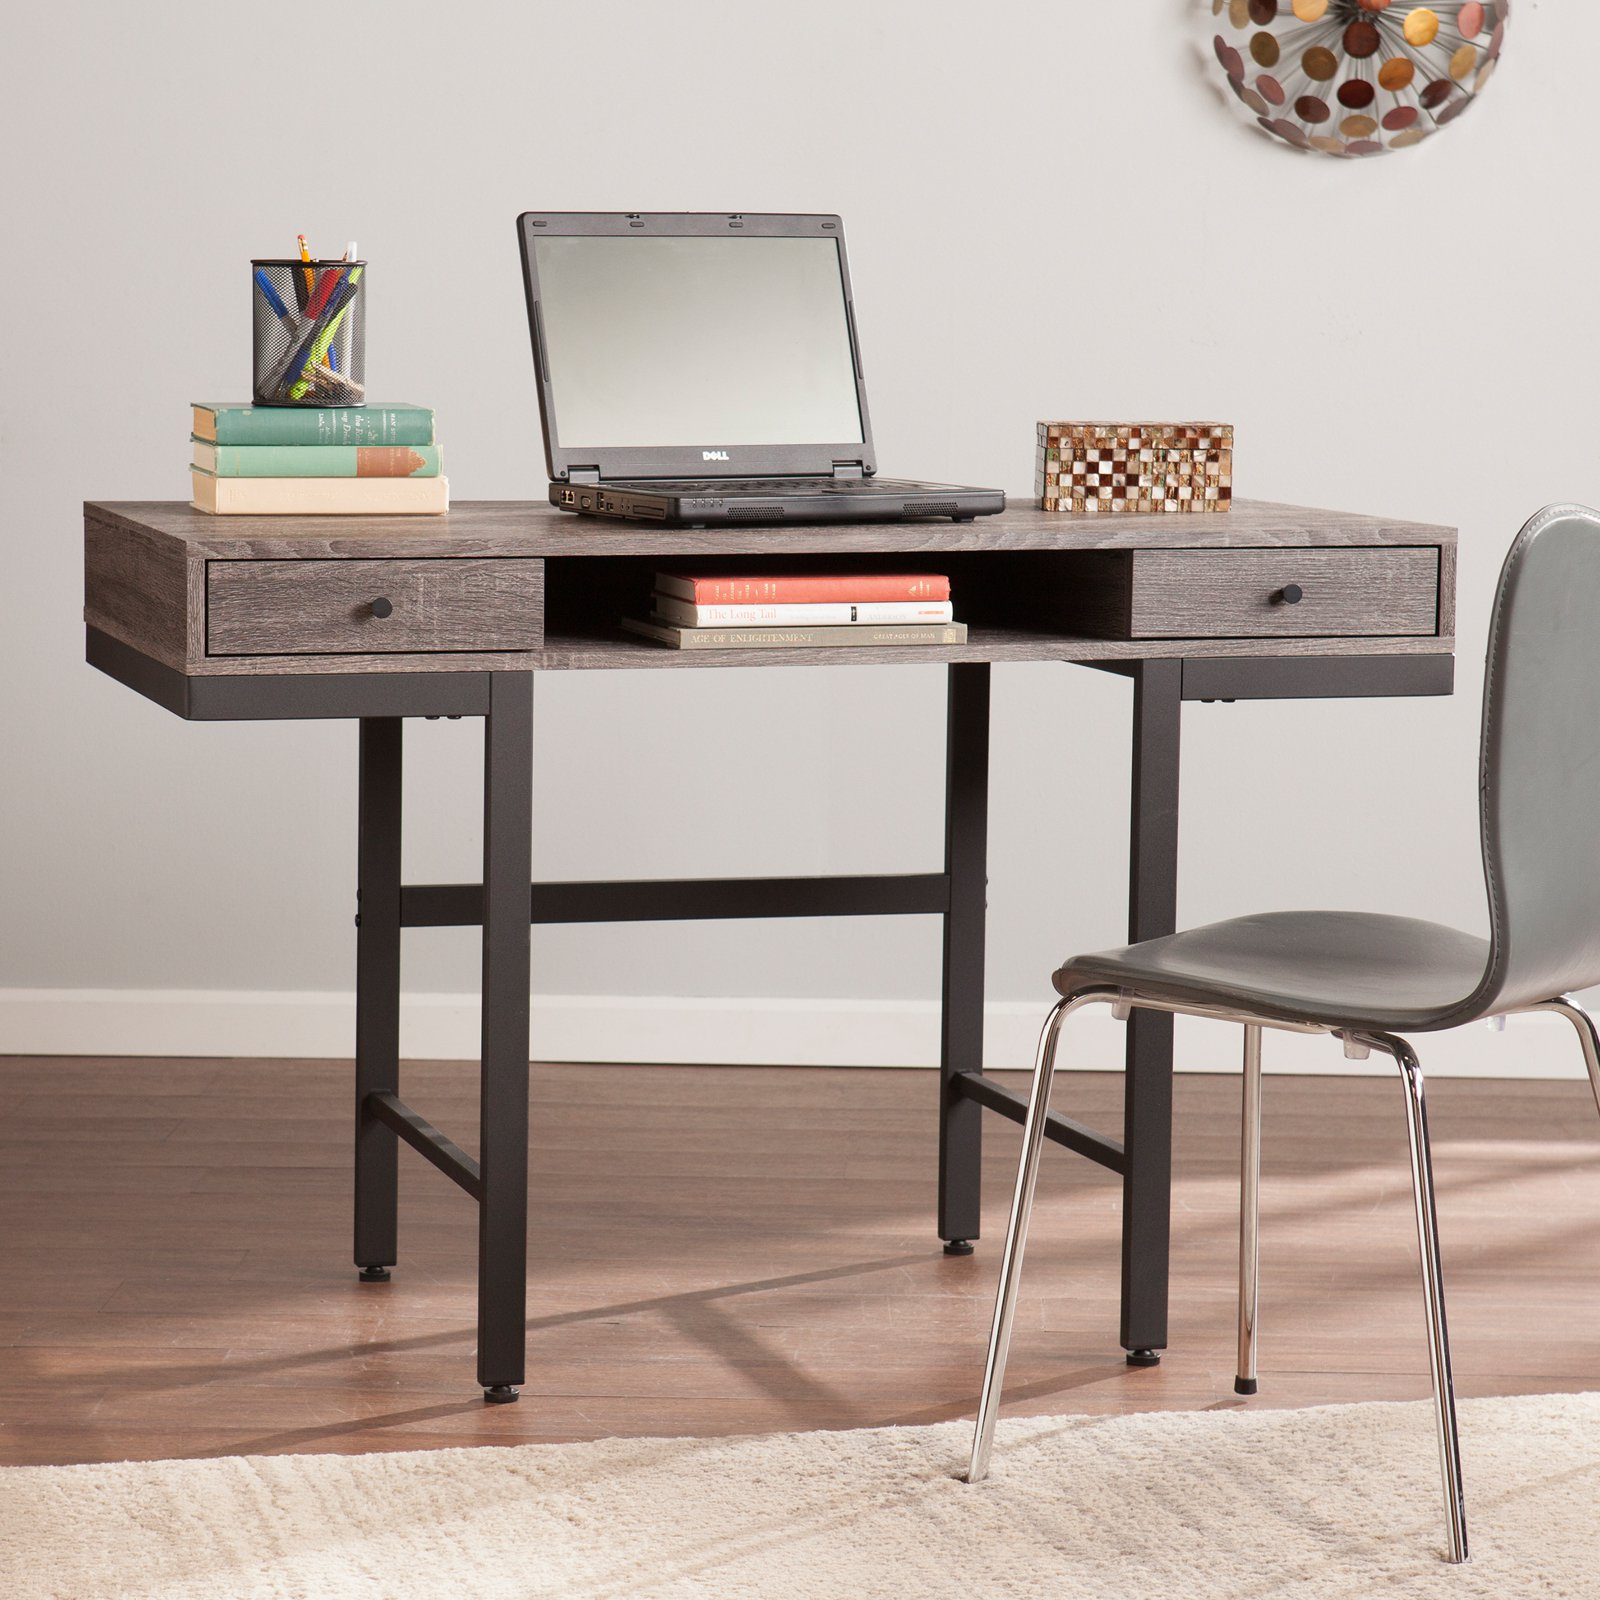 Southern Enterprises Ranleigh Writing Desk - Weathered Gray / Black